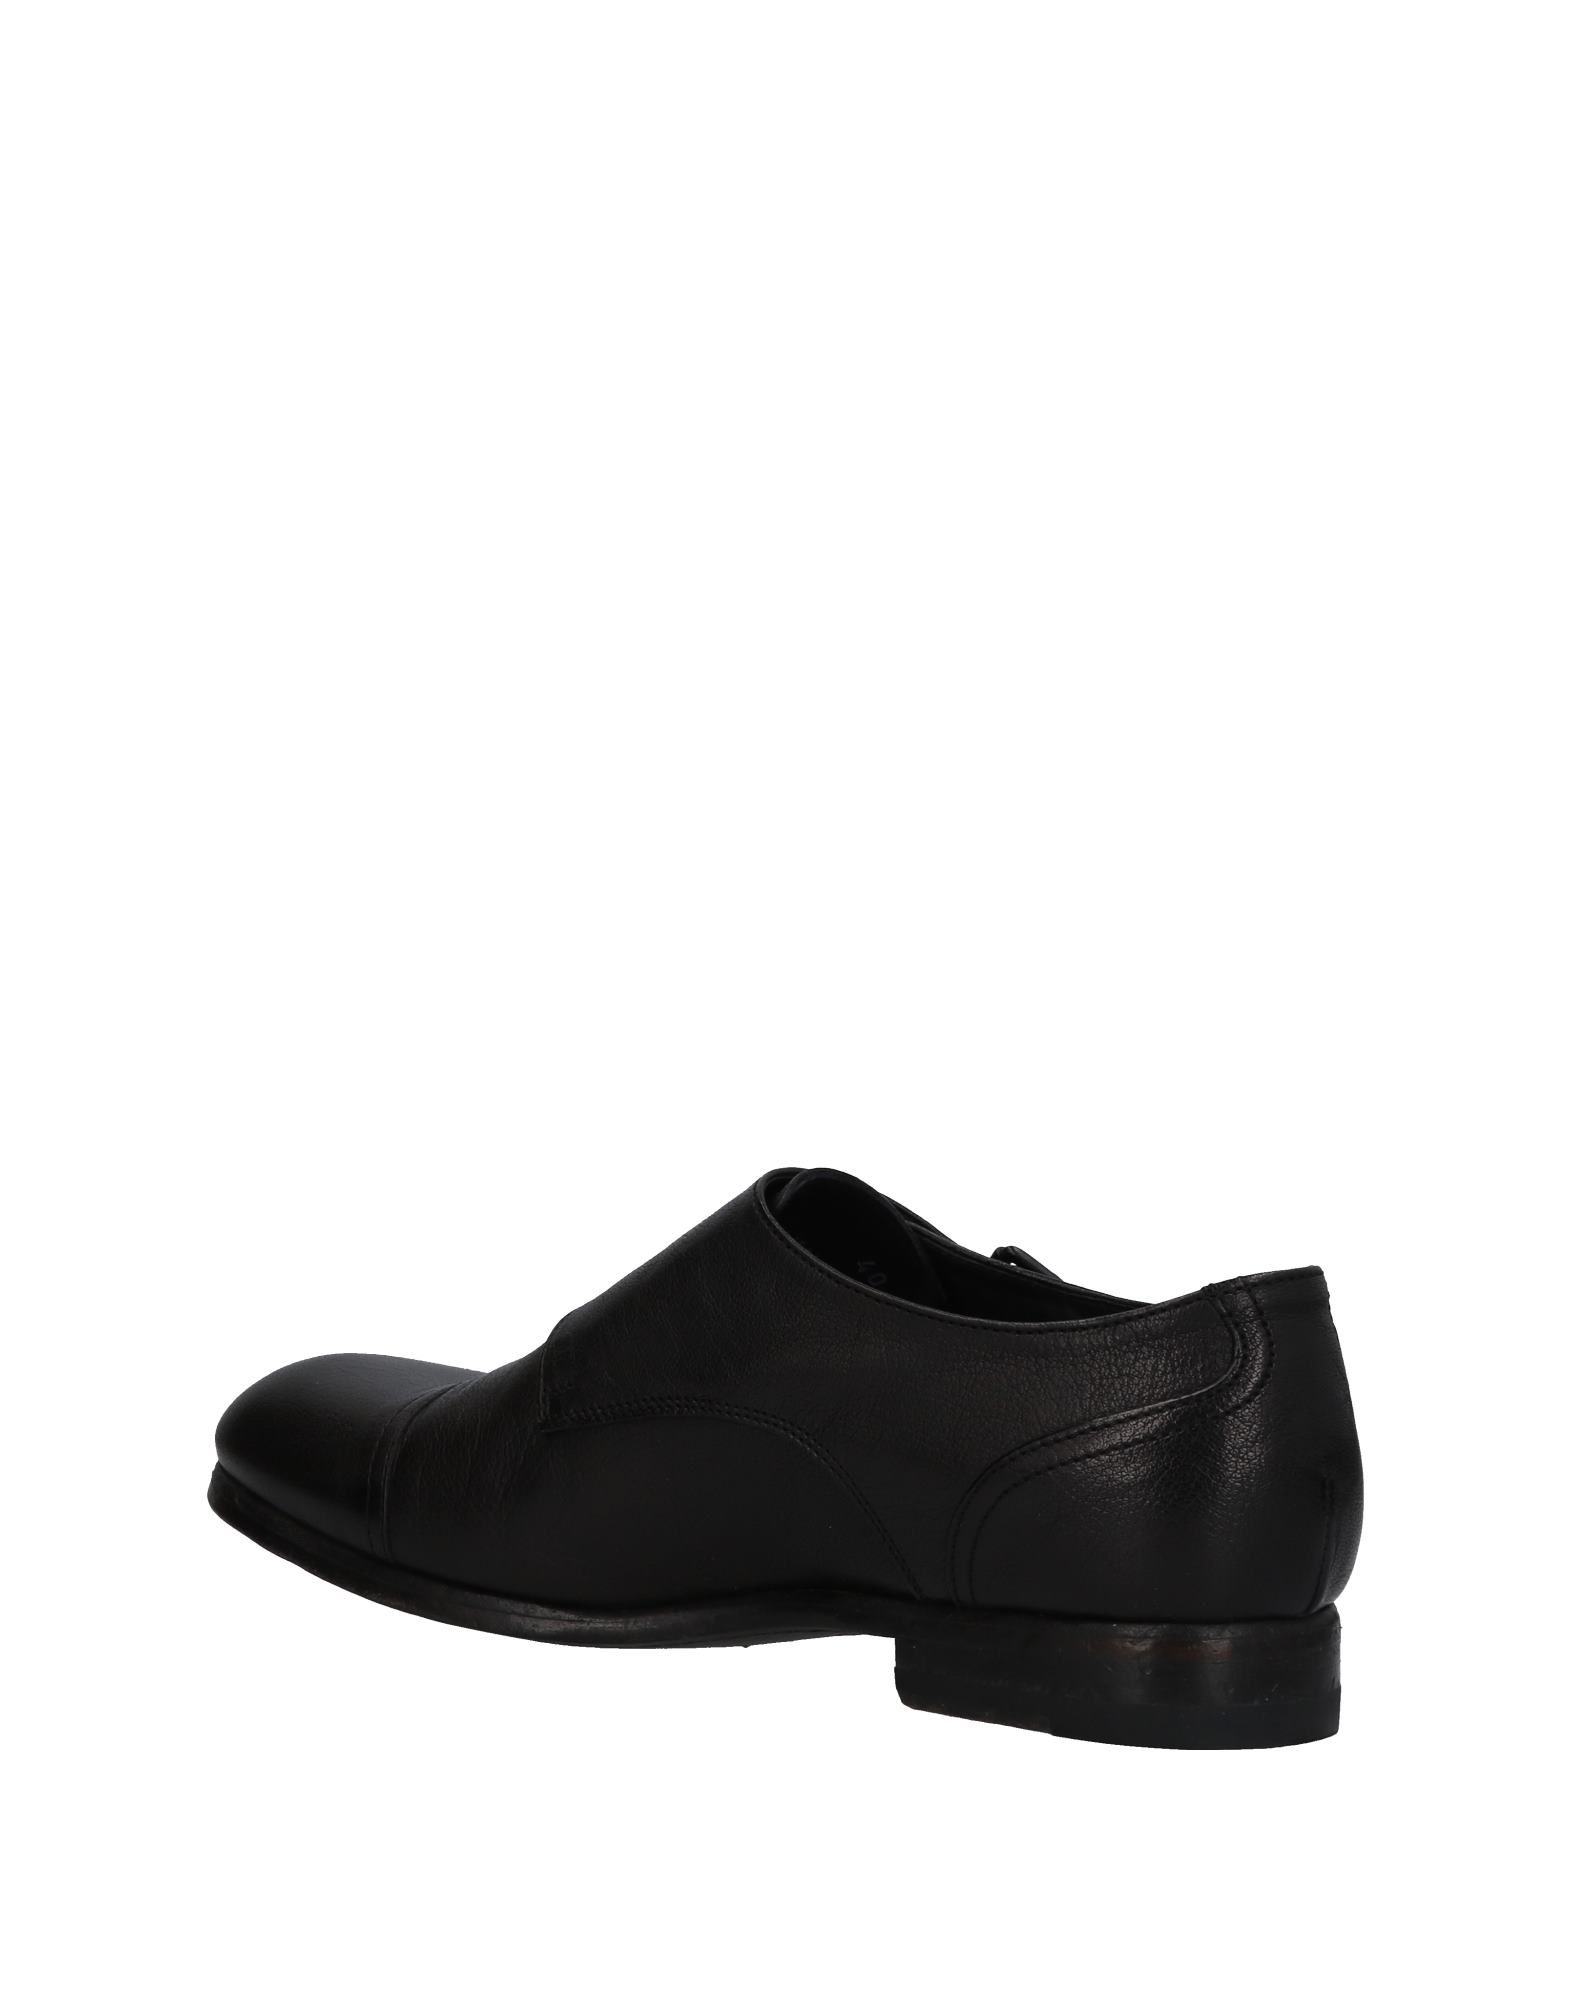 Mocassins Men Only Paul Smith Femme - Mocassins Men Only Paul Smith sur